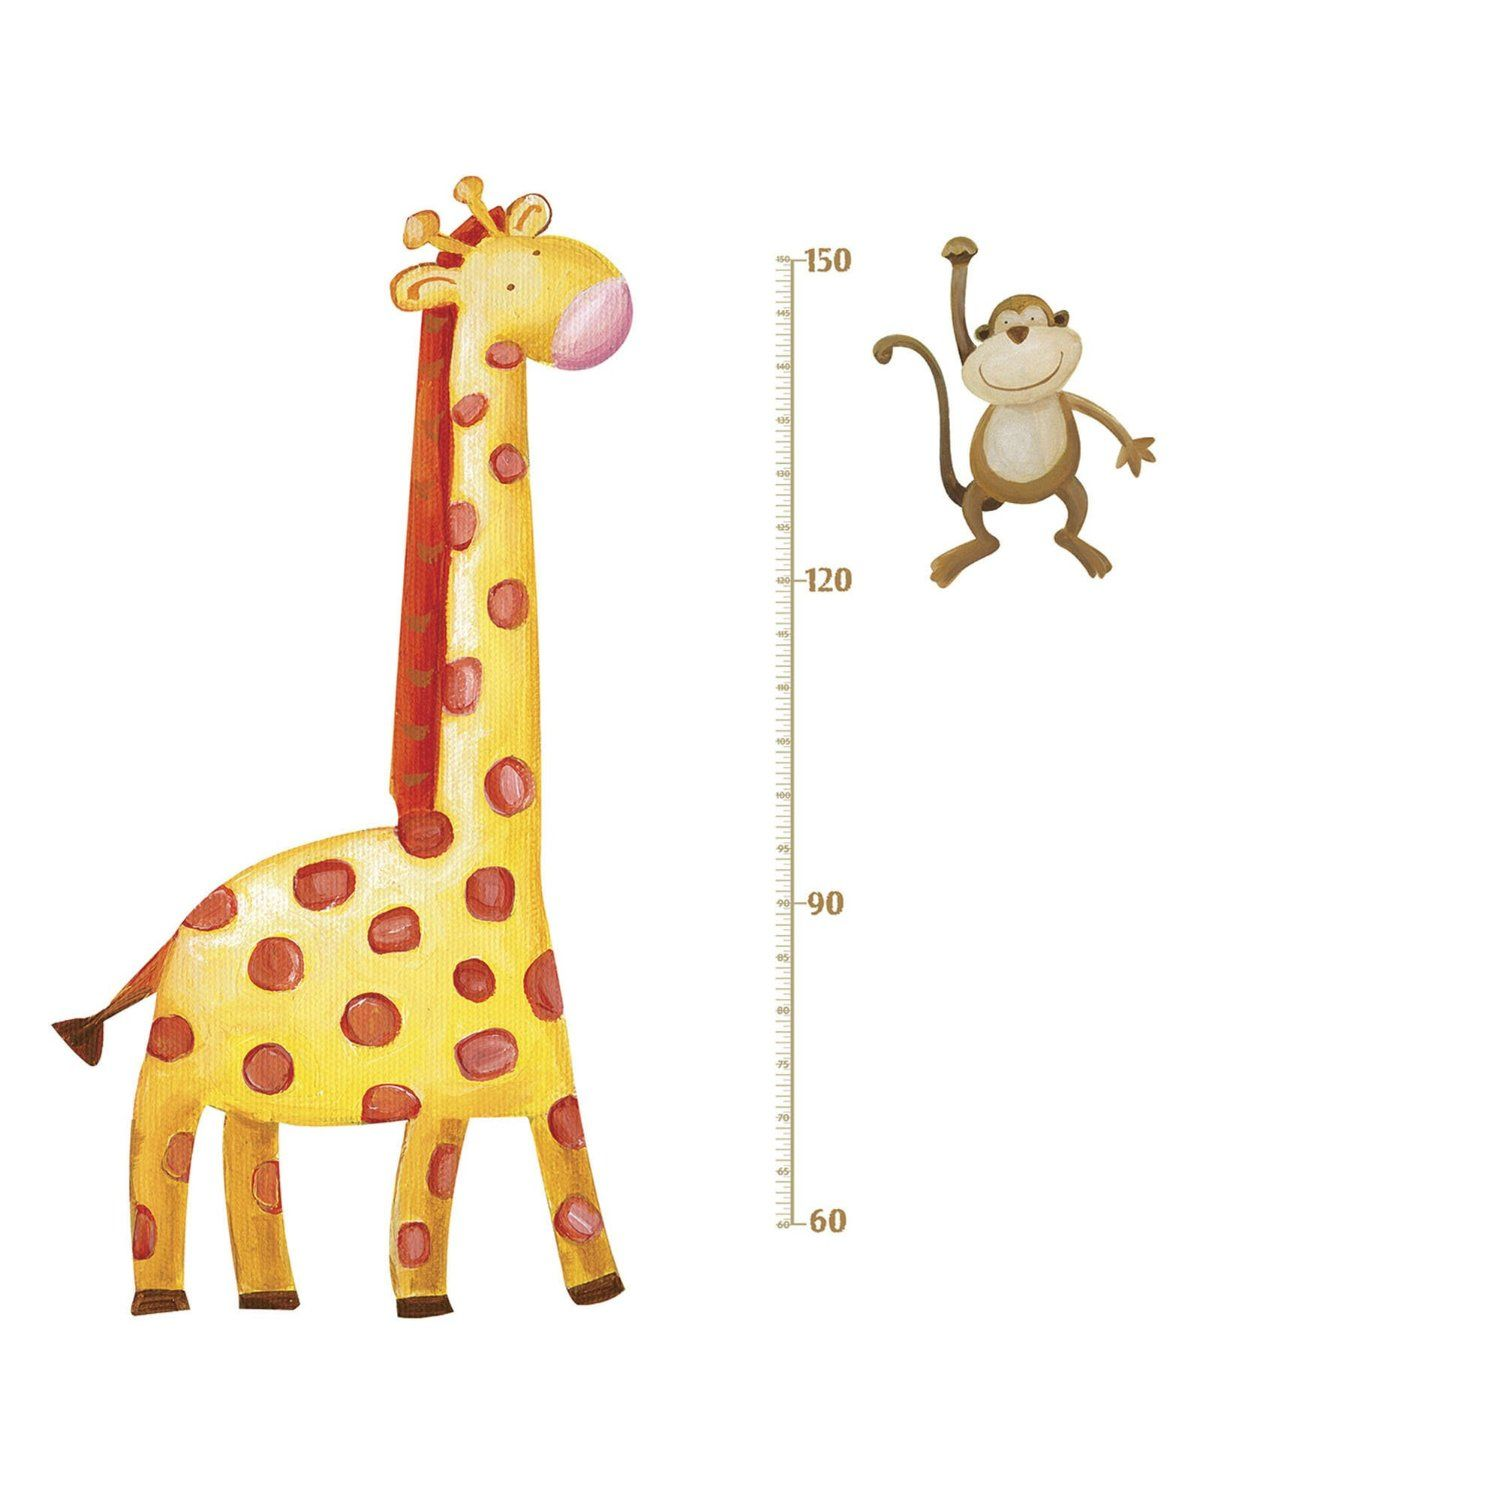 Jomoval roommates repositionable childrens wall stickers jungle jomoval roommates repositionable childrens wall stickers jungle adventure giraffe growth chart multi colour geenschuldenfo Image collections